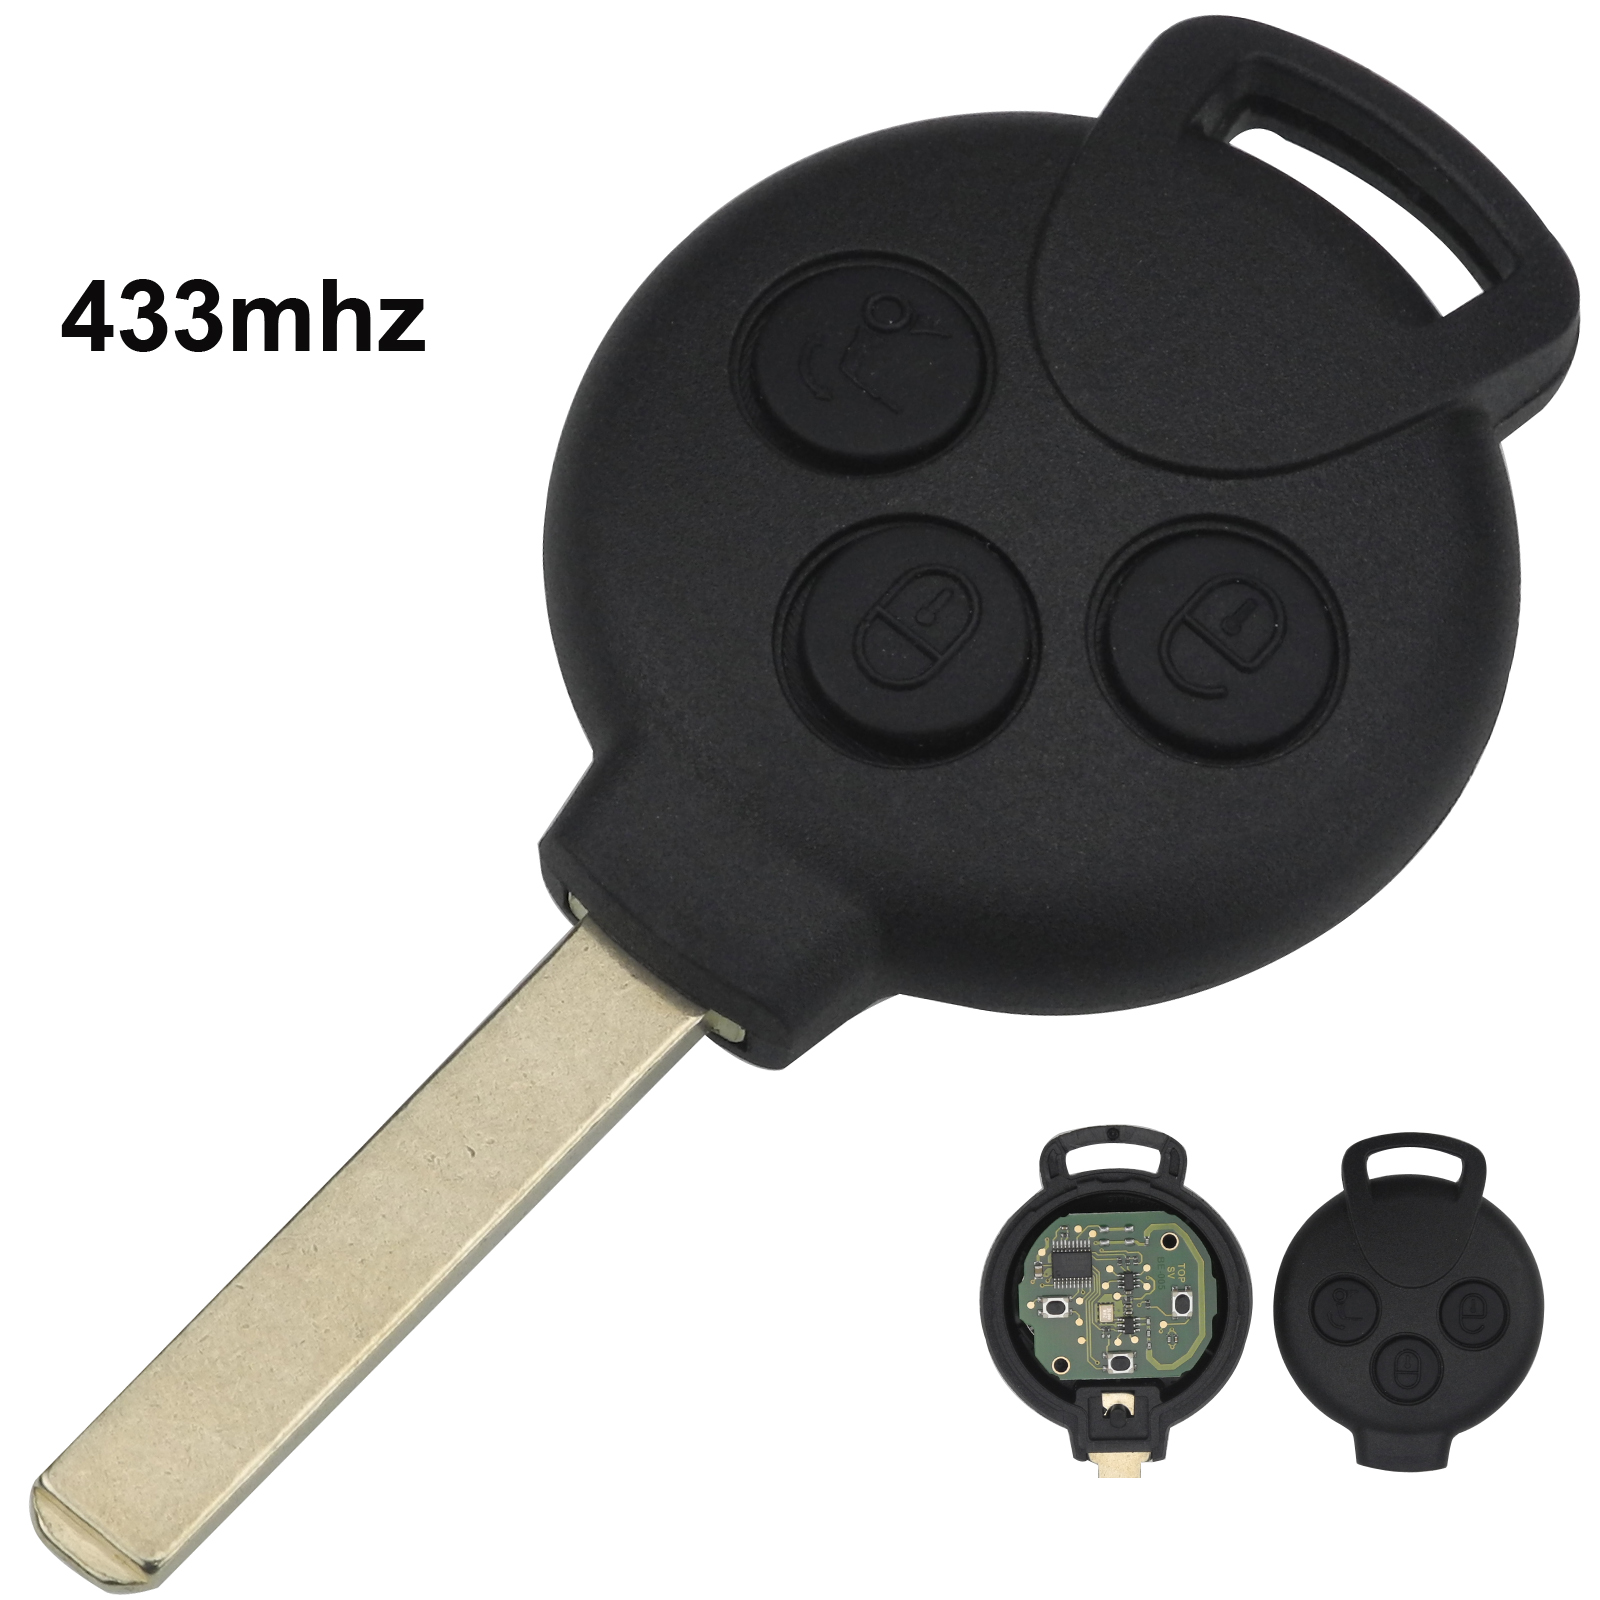 Jingyuqin 3 Buttons Smart Remote Key Keyless Entry FOB for MERCEDES BENZ 434MHZ Car Styling